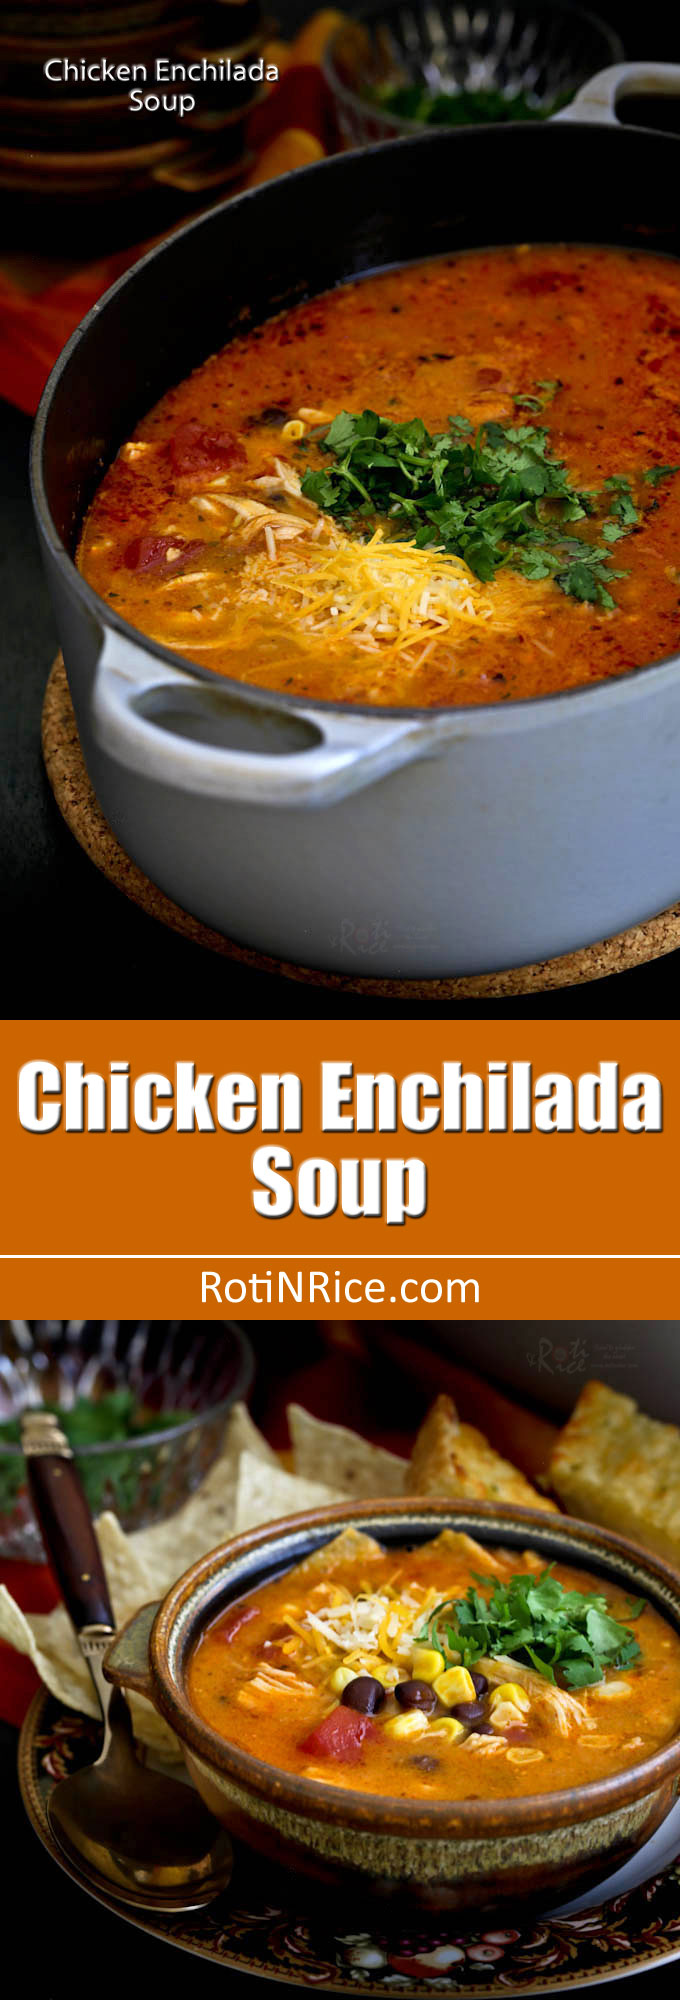 Easy to prepare creamy Chicken Enchilada Soup with shredded chicken, black beans, corn, diced tomatoes, and melted cheese. So comforting and delicious! | RotiNRice.com